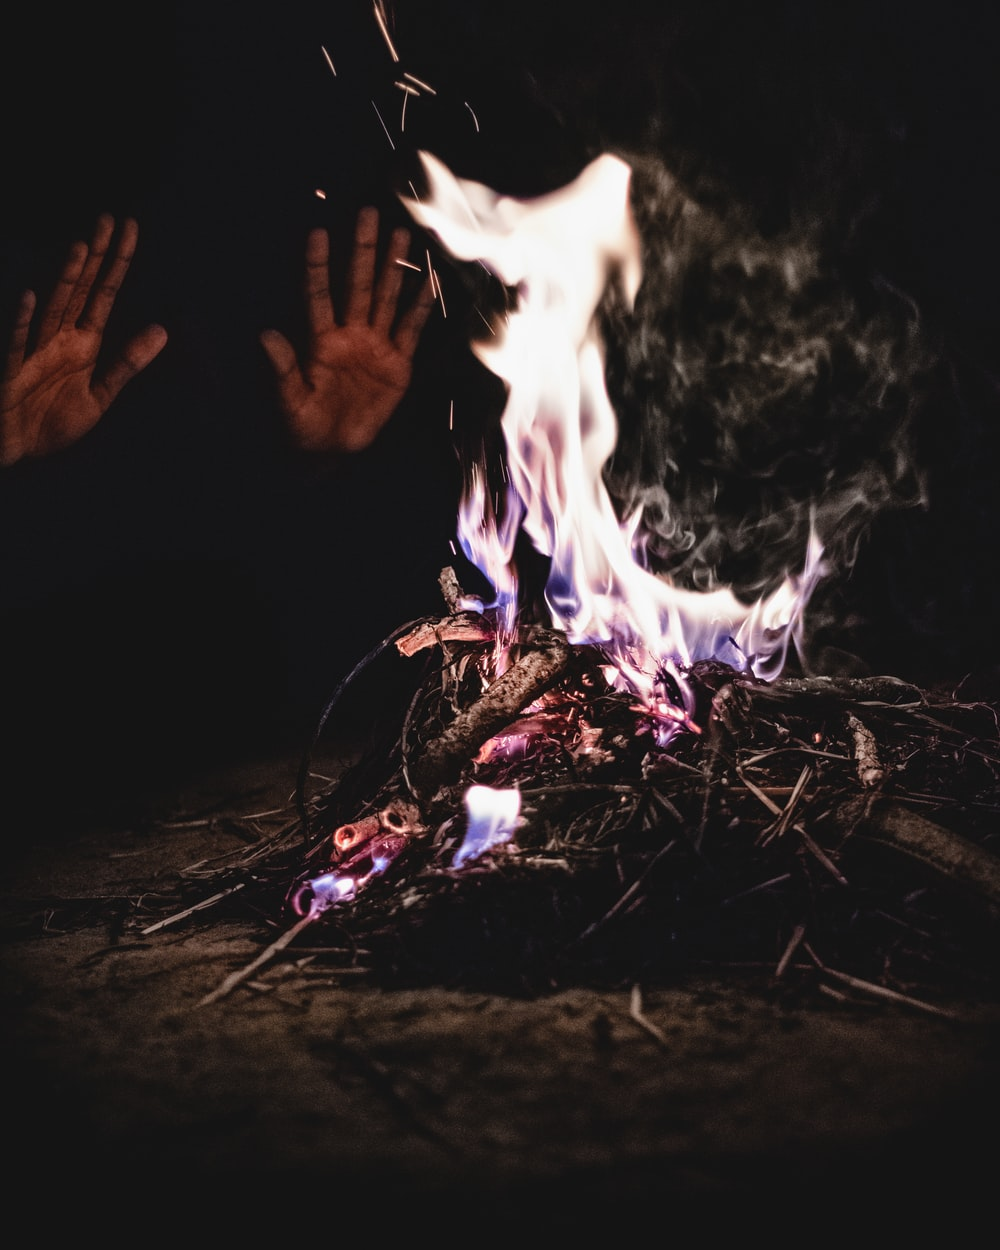 person heating both hands on bornfire